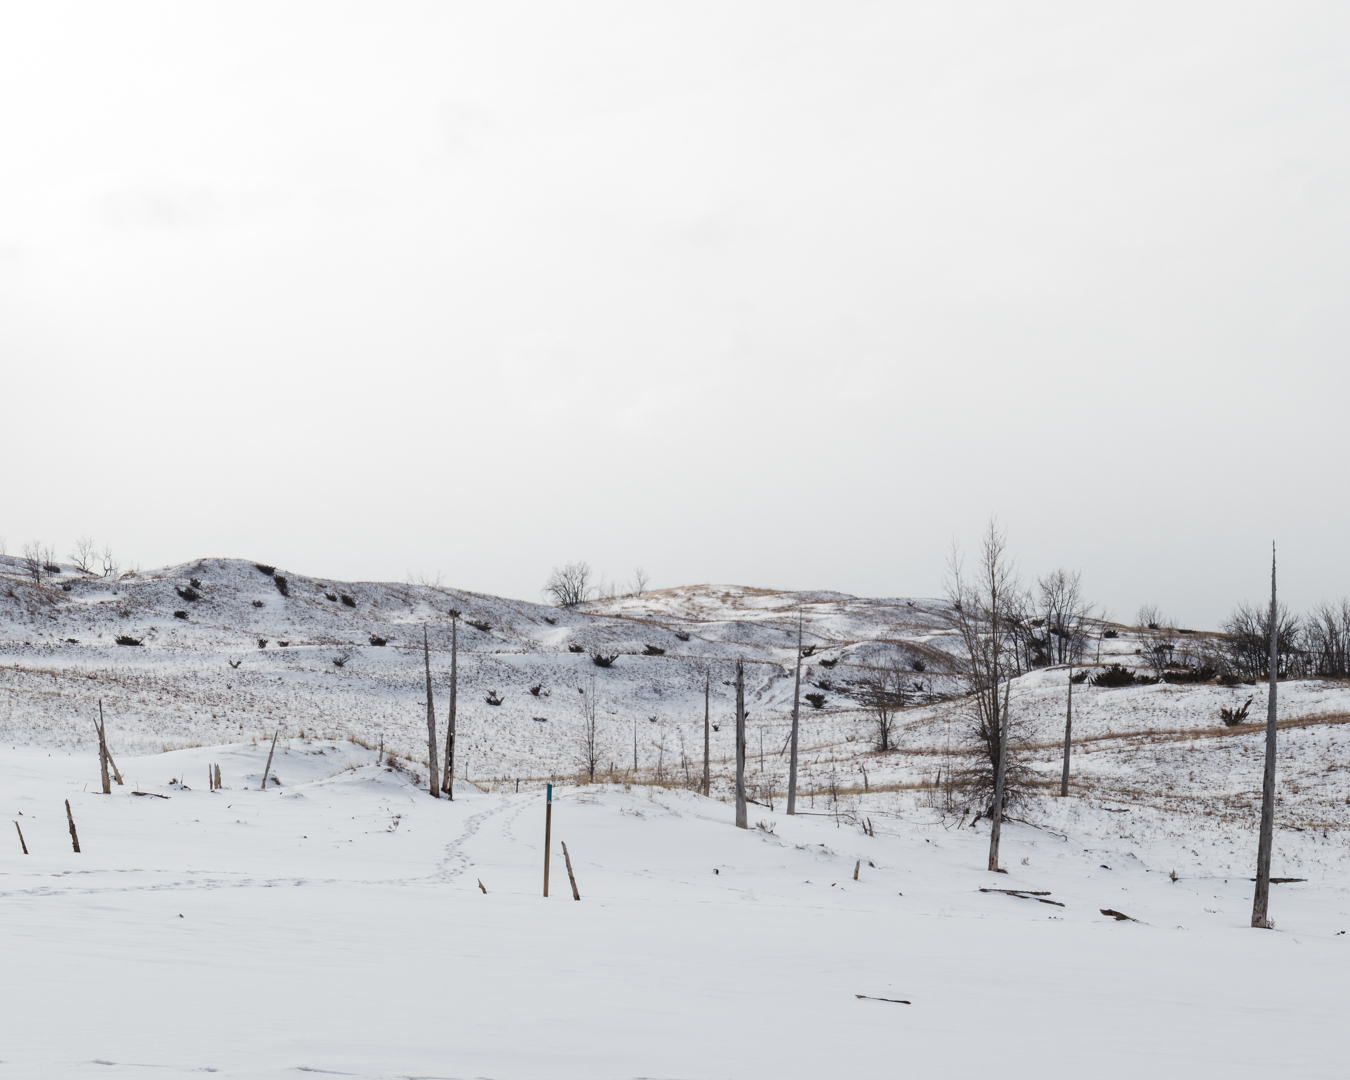 This one too is overexposed, but this time I did so to create contrast between the snow and the tree trunks. It helps to make the photograph more about the shape of the plants and the dunes, more than the actual landscape